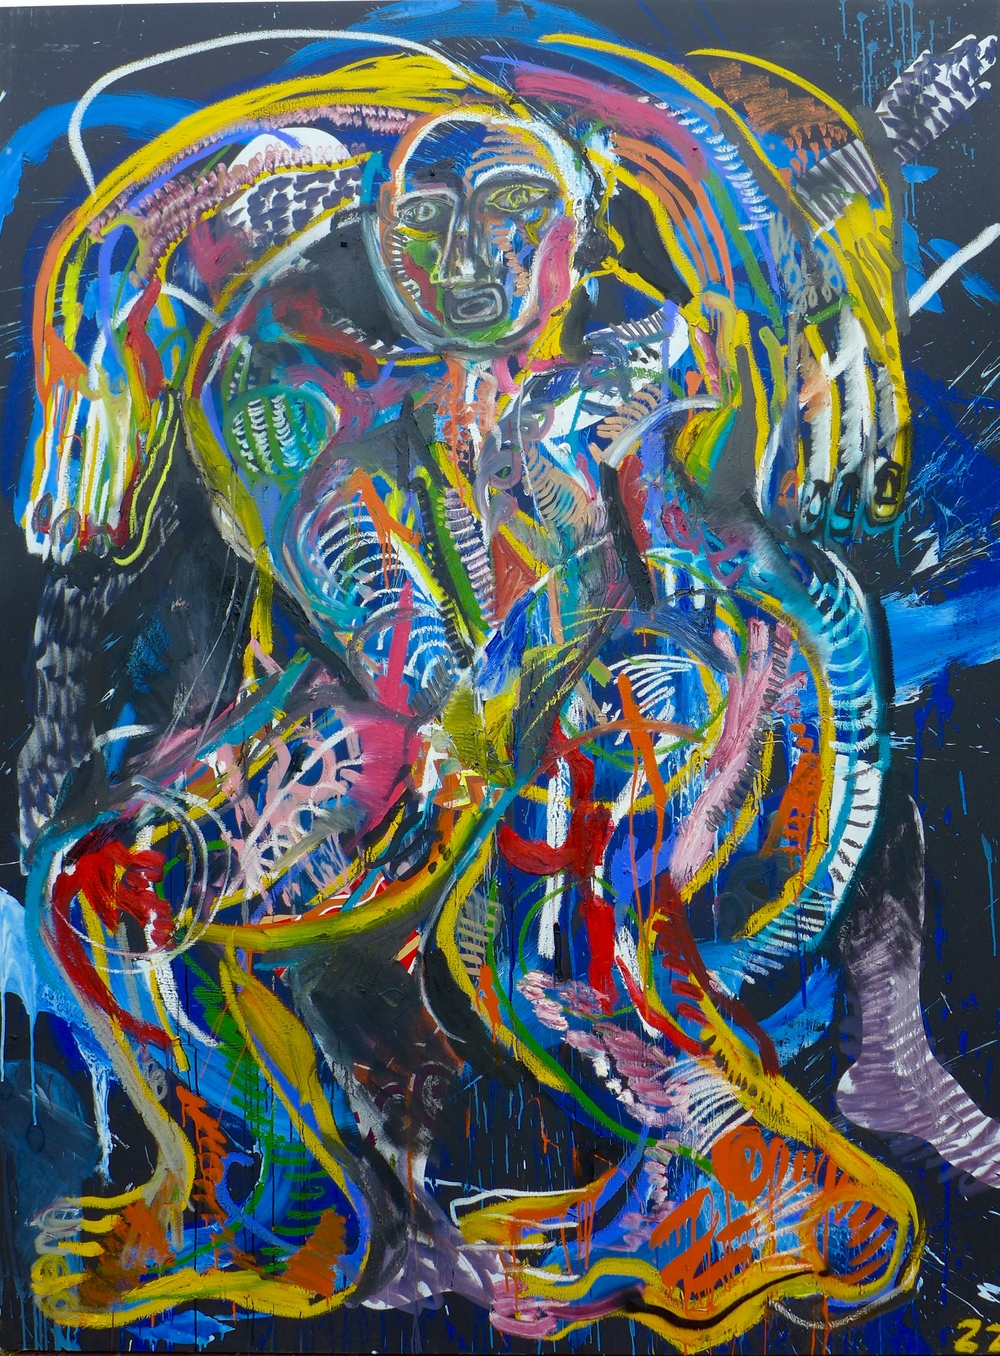 Zio Ziegler Borders of Consciousness 72 x 96 x 1.5 inches Oil and House Paint on Canvas